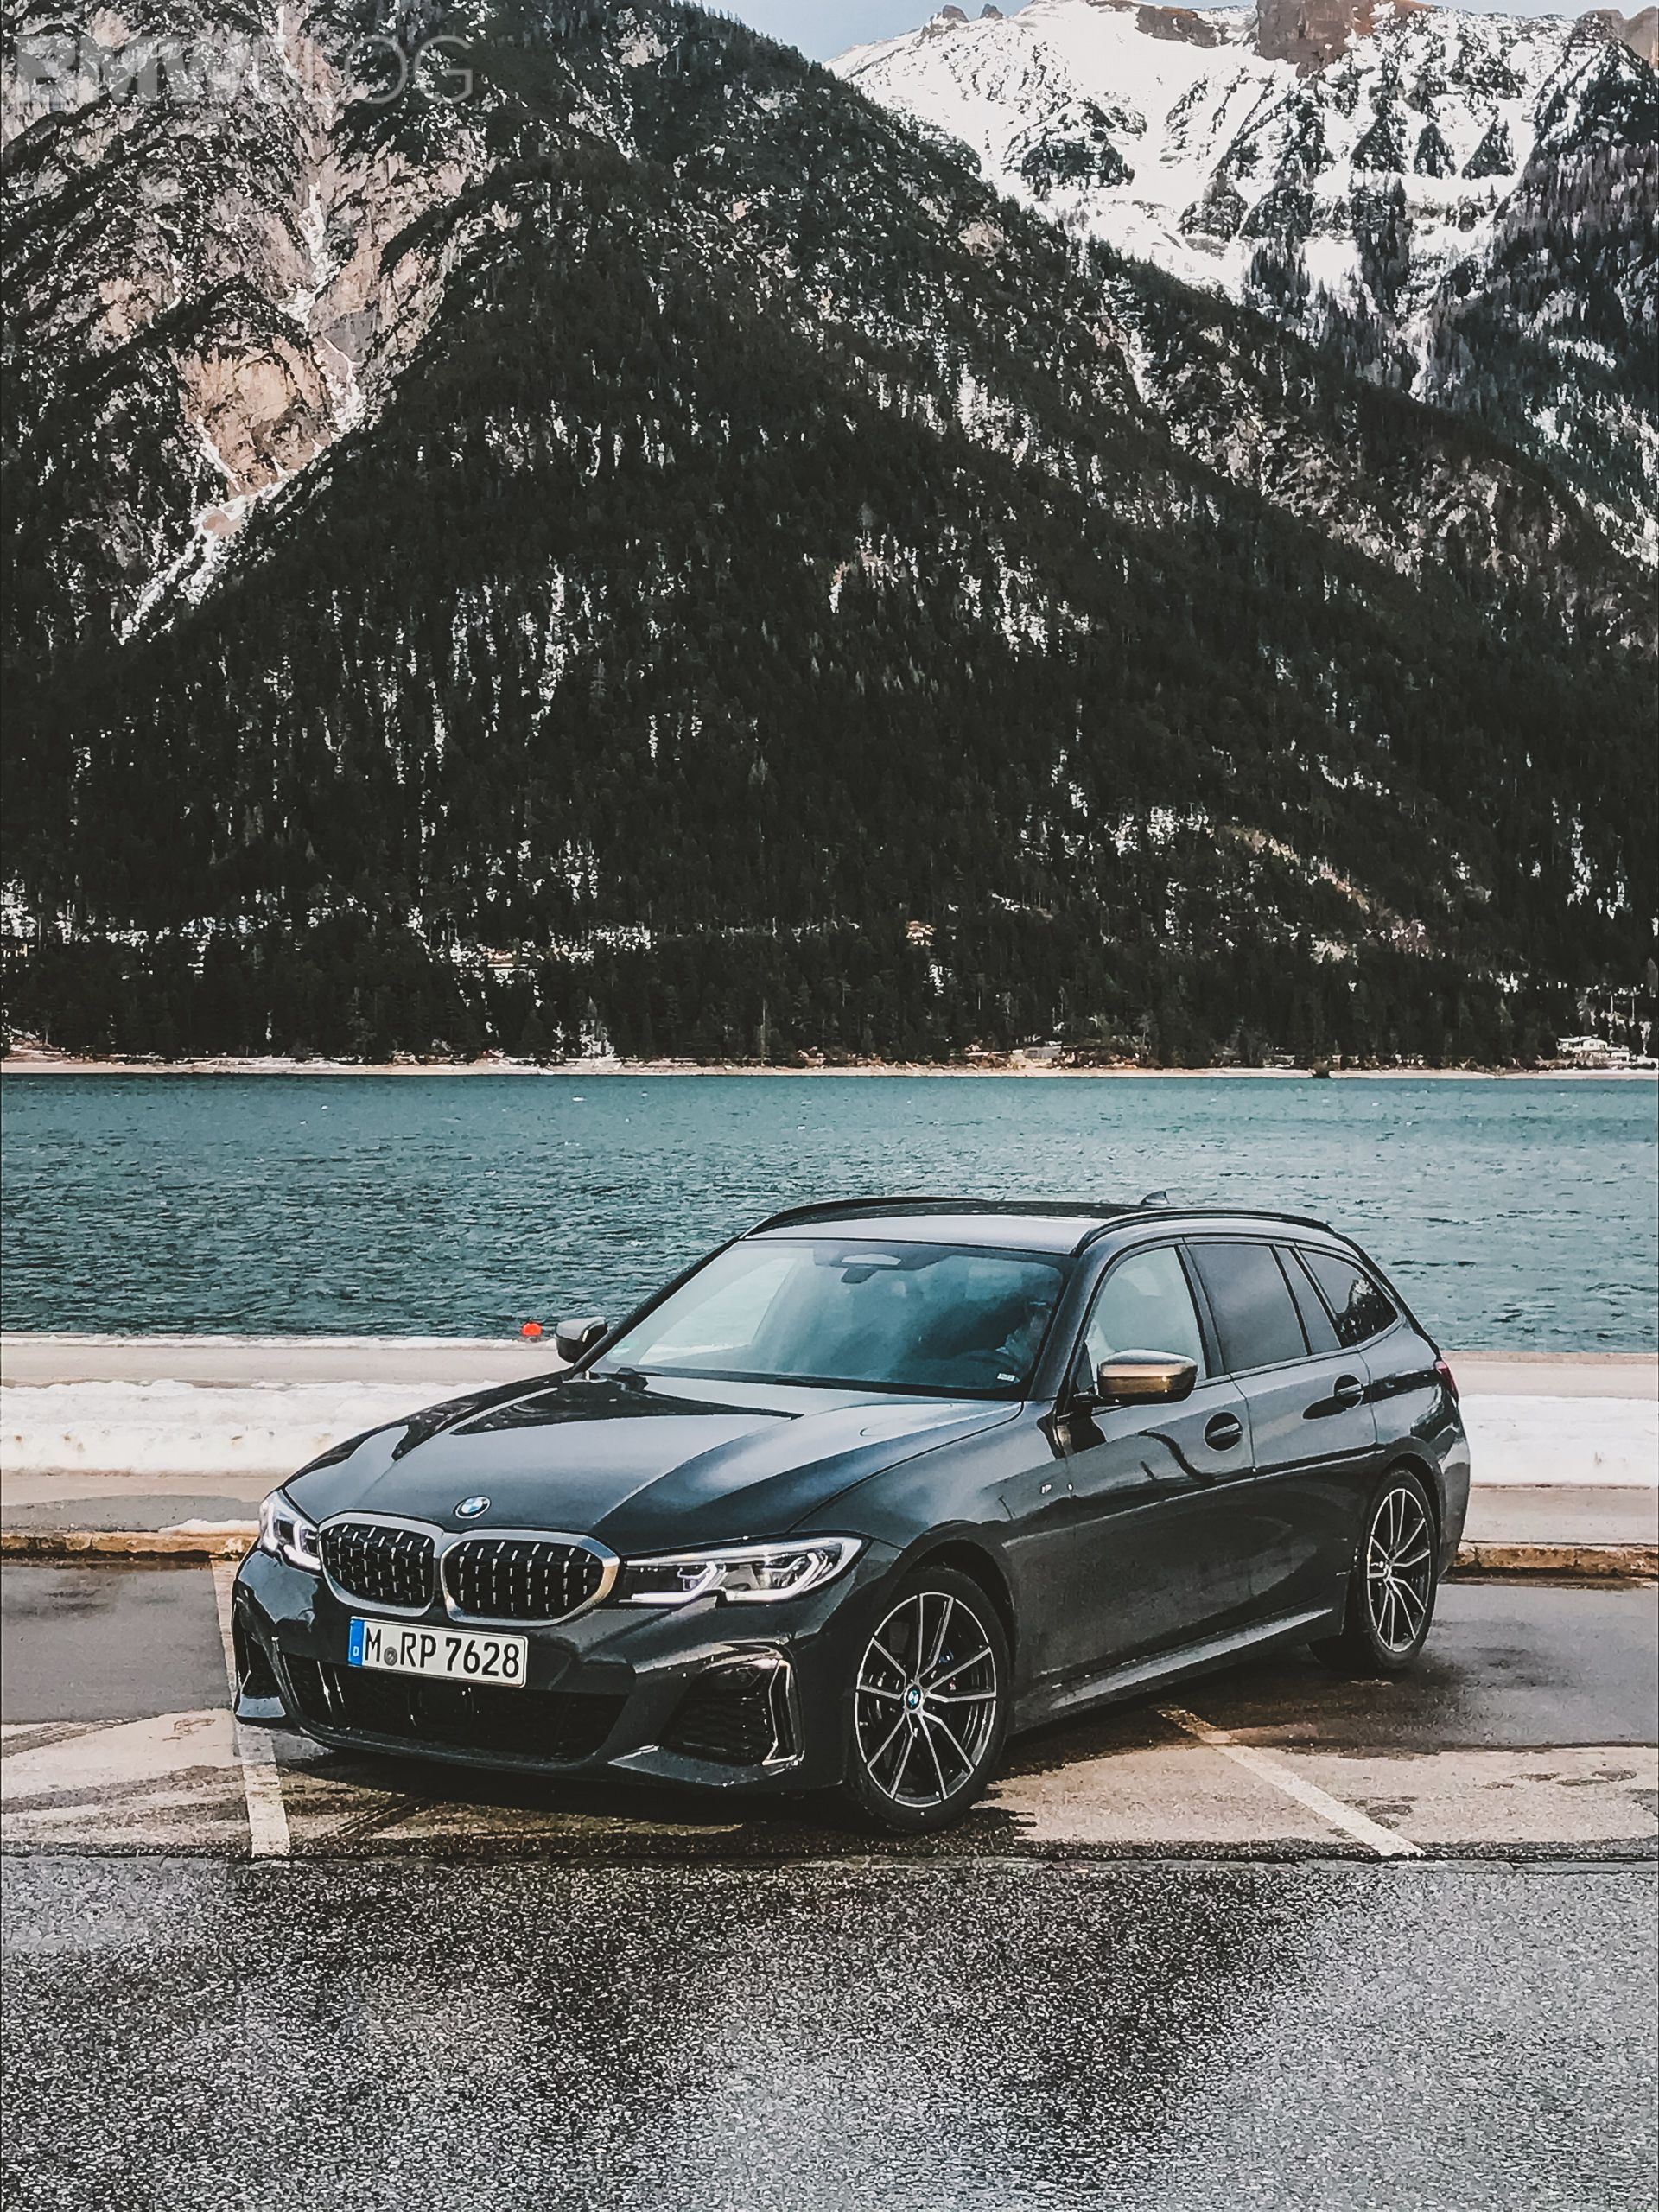 2020 Bmw M340i Touring A Road Trip Into The Alps In 2020 Bmw Touring Living In Car